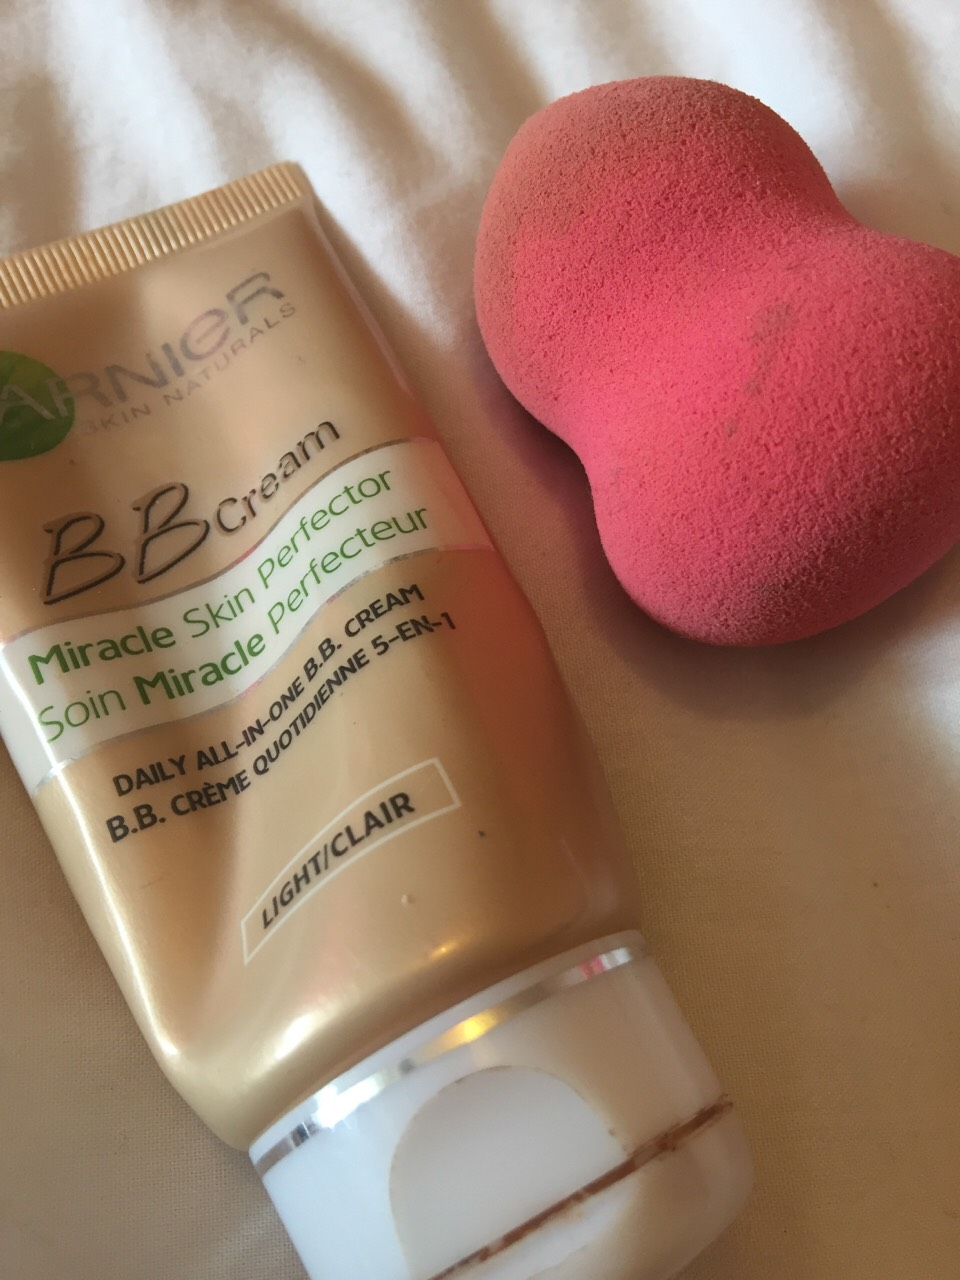 I use the Garnier BB cream, then I blend it out with my pink beauty blender.